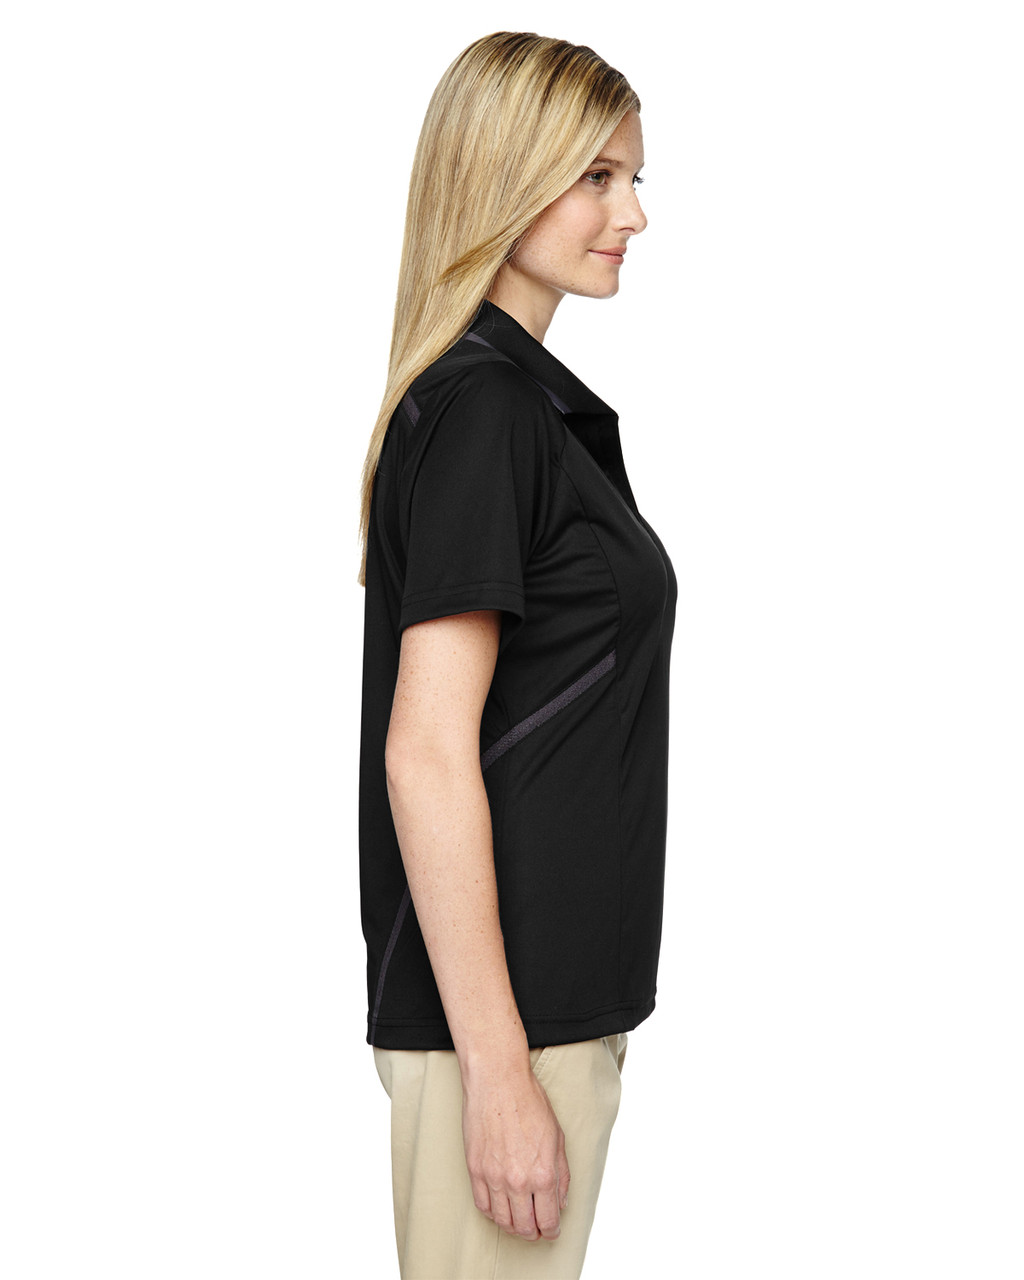 Black - Side, 75118 Ash City - Extreme Eperformance Propel Interlock Polo Shirt with Contrast Tape   BlankClothing.ca